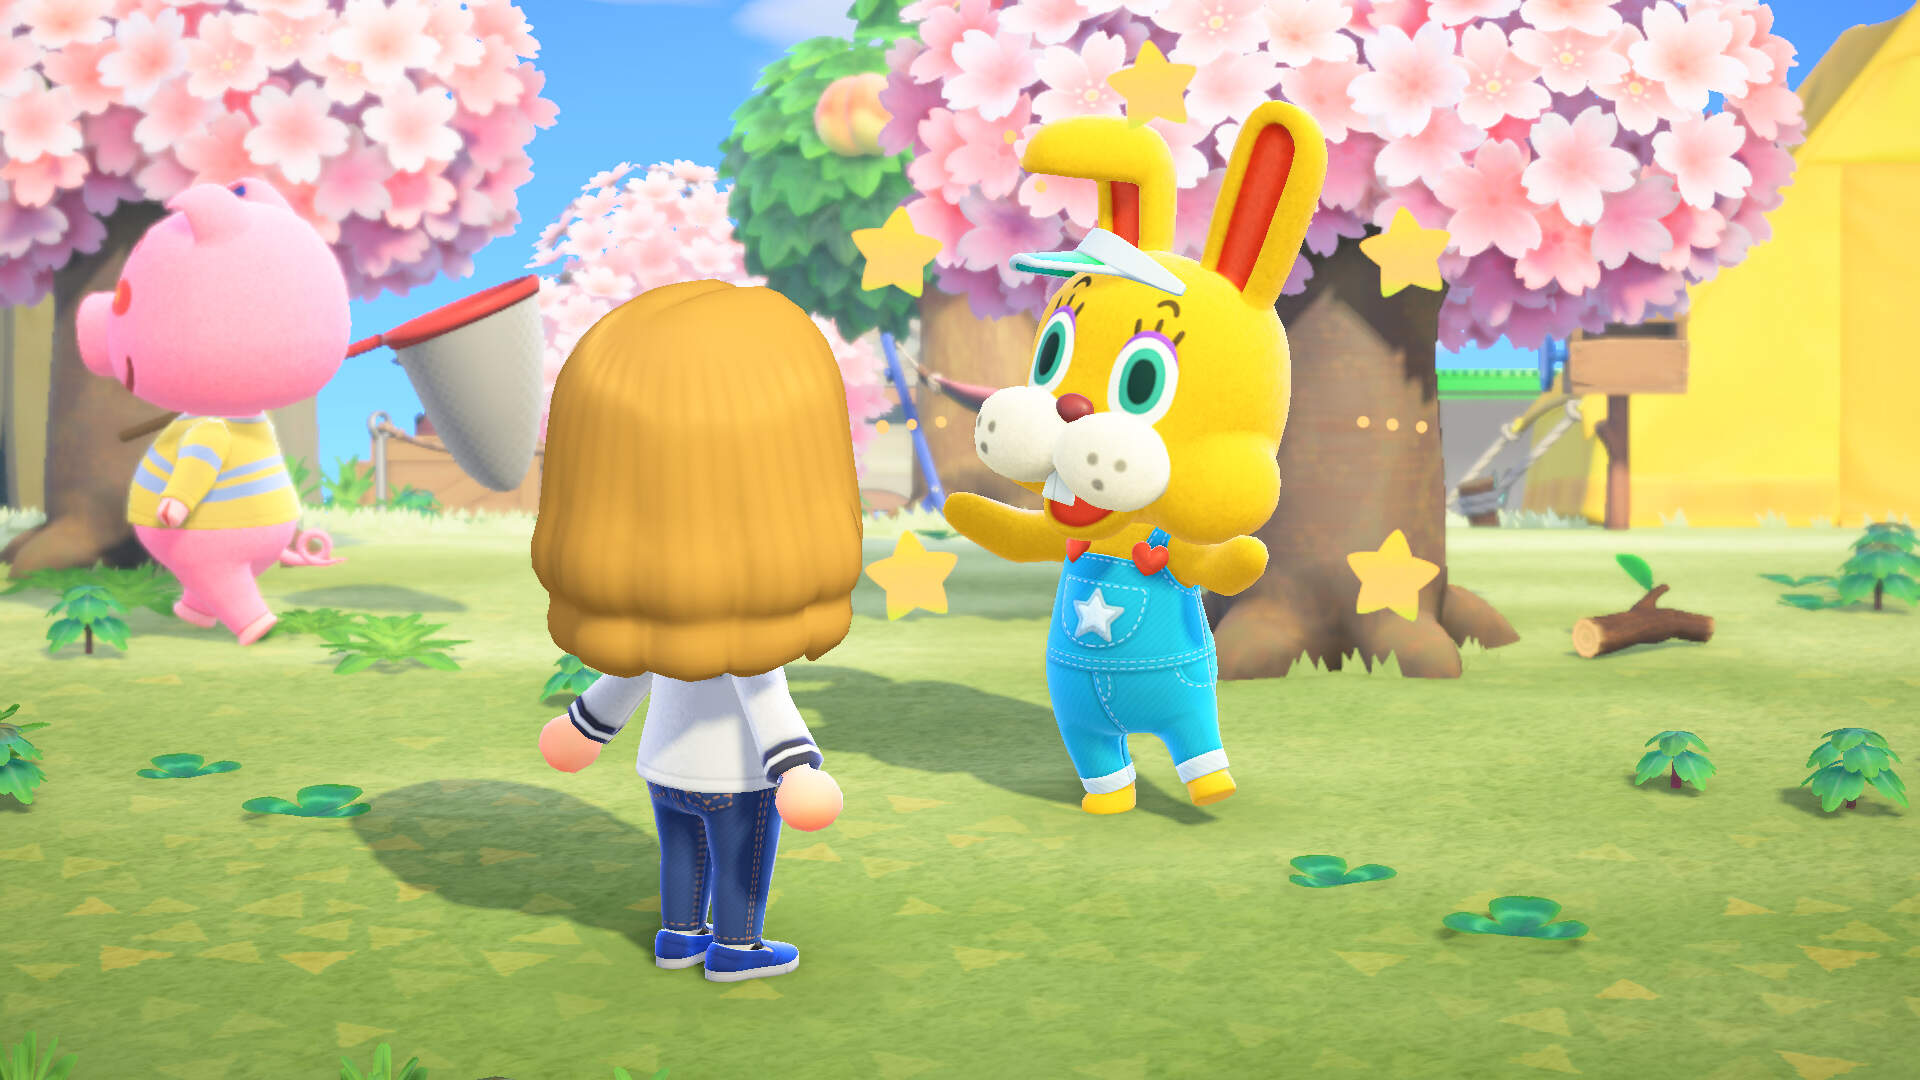 Animal Crossing New Horizons: When Is the Next Seasonal Event? (April 2020)